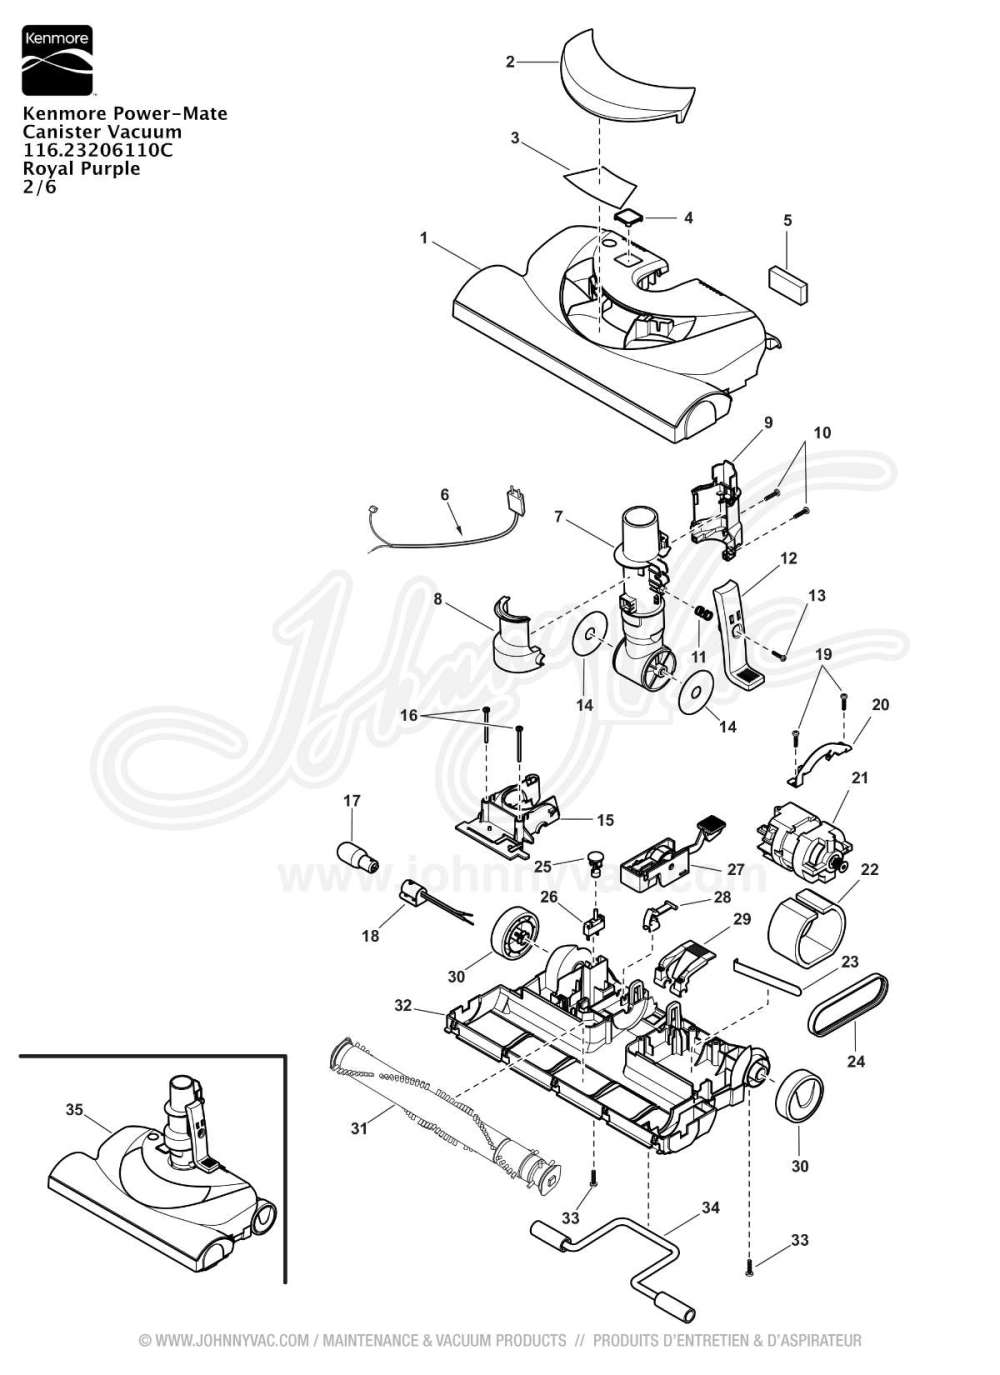 medium resolution of vacuum schematic exploded view for kenmore power mate canister vacuum 116 23206110c